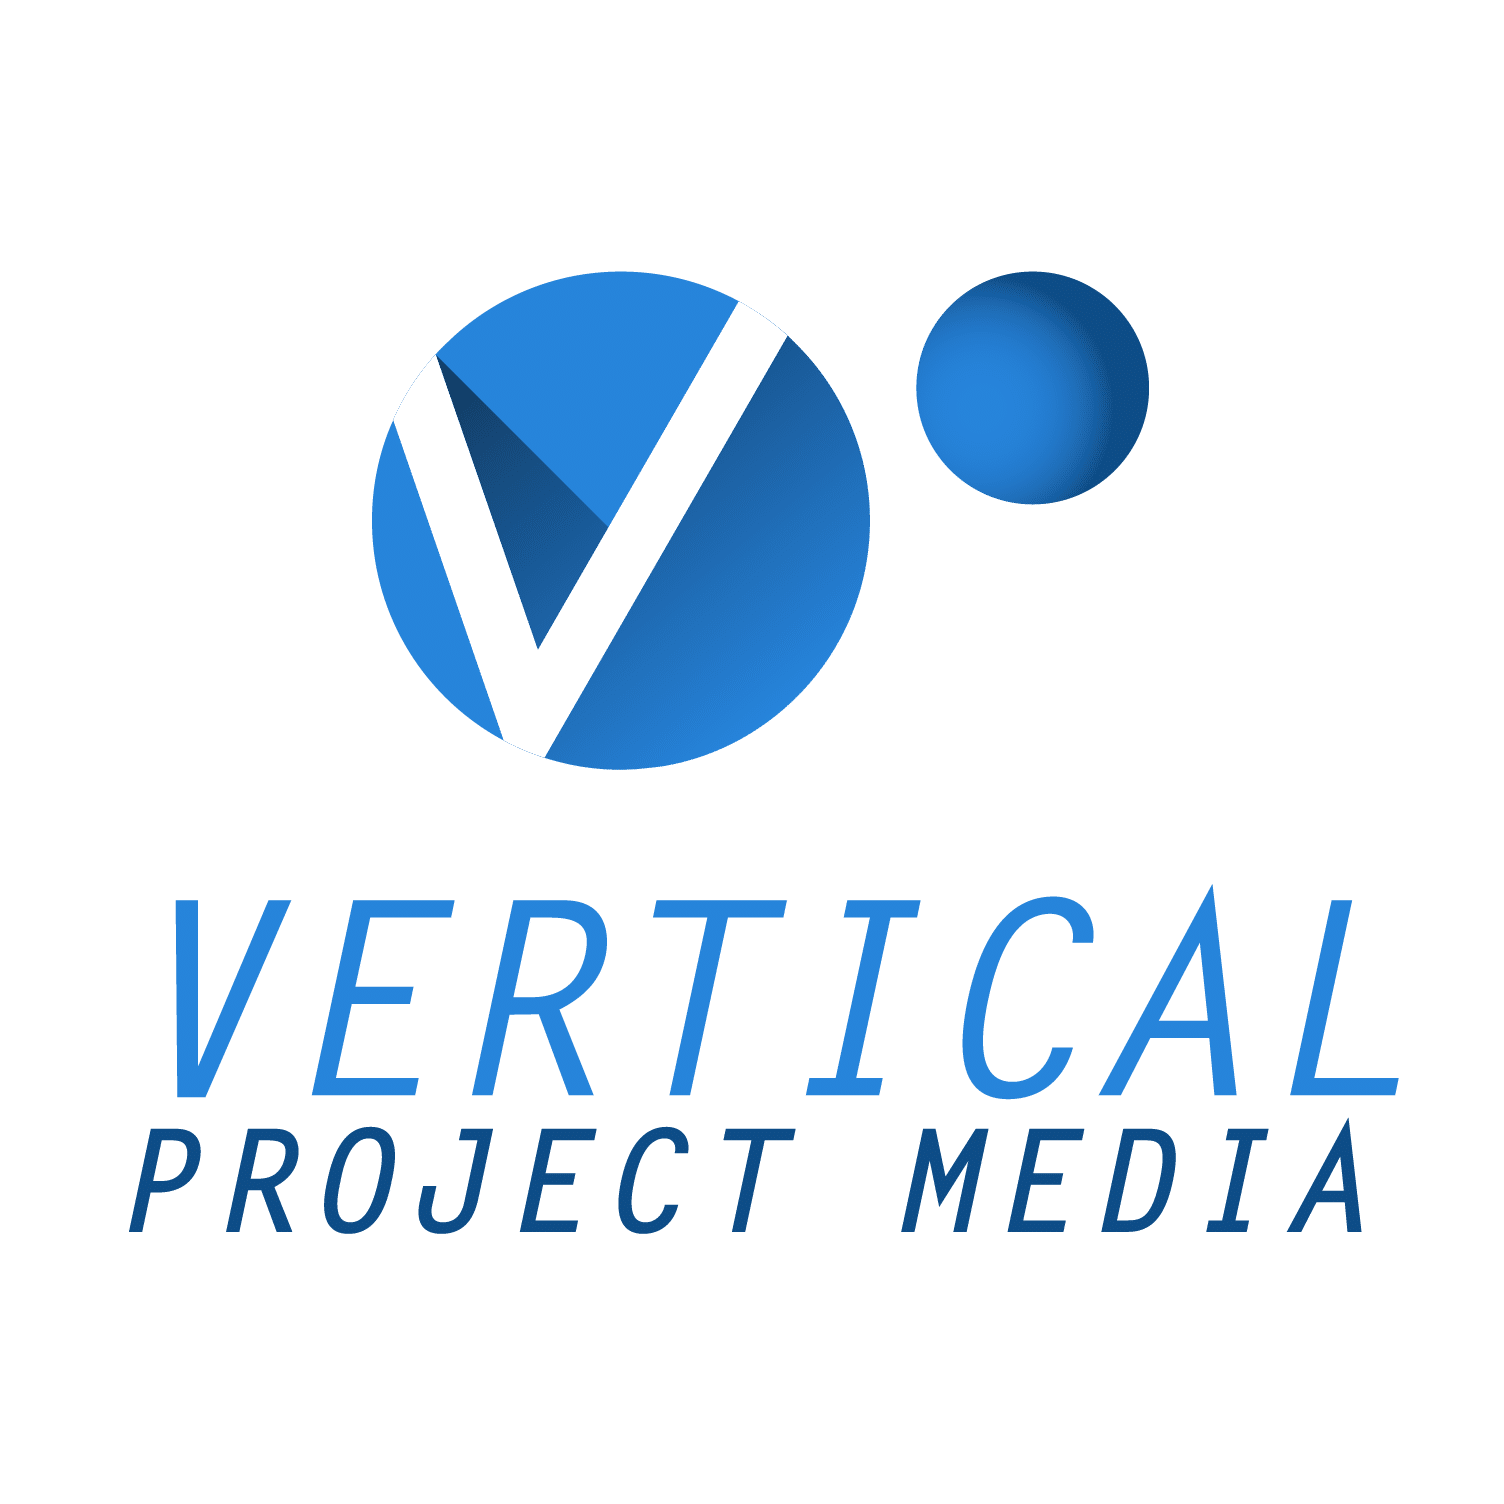 Vertical Project Media